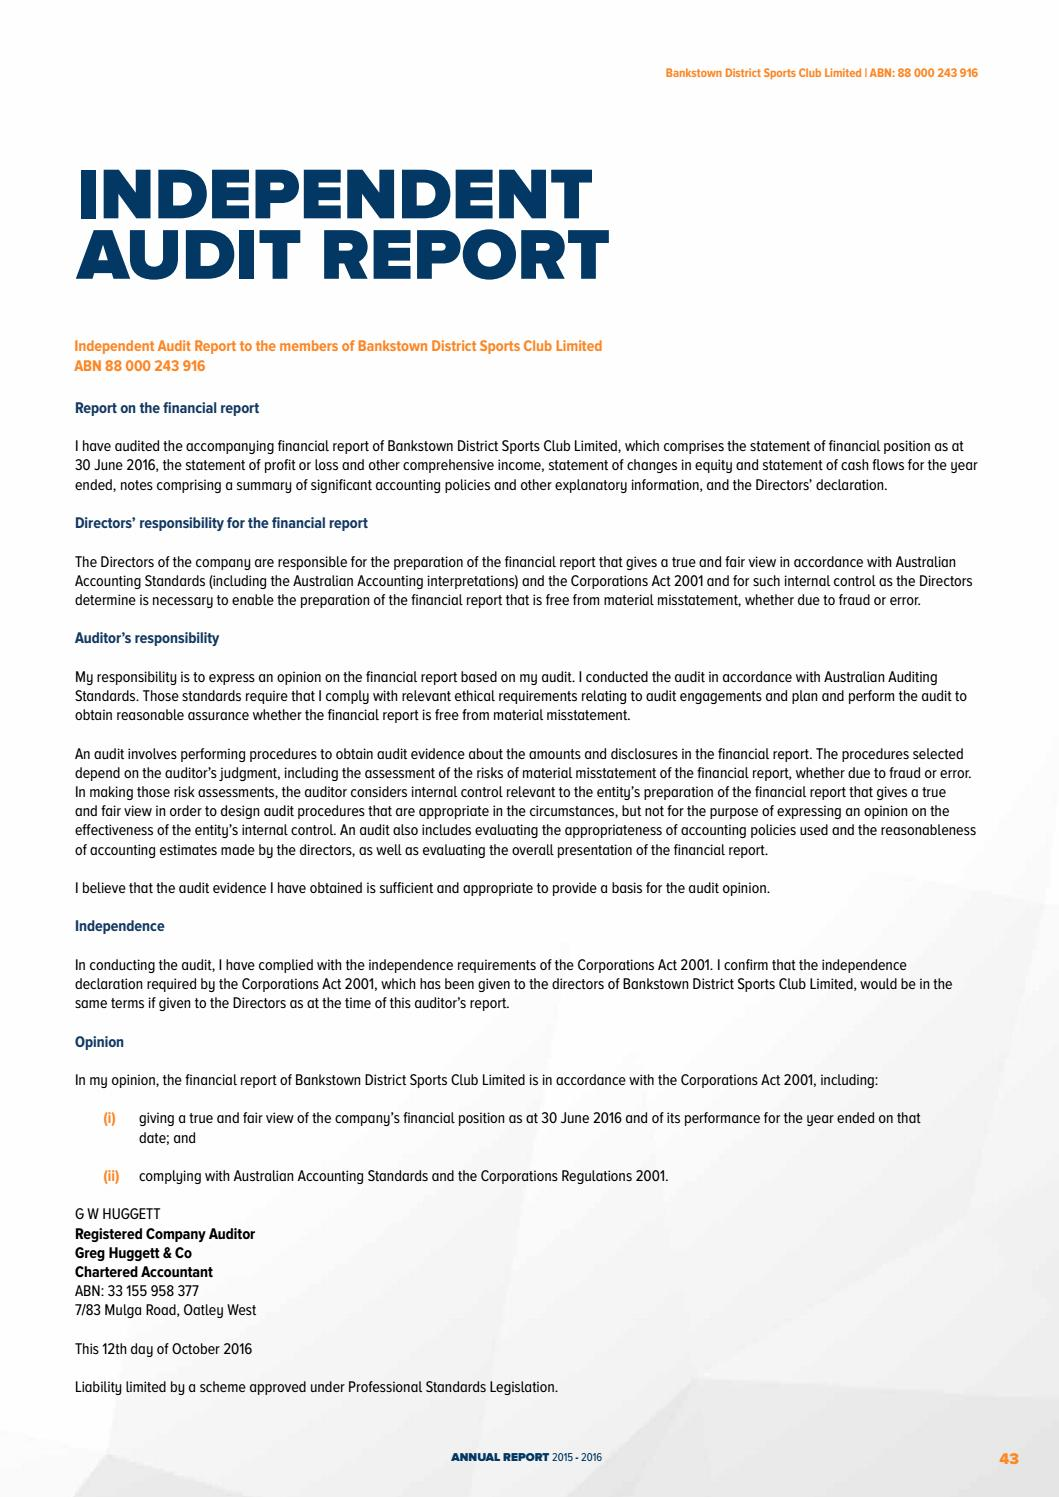 ethical requirements for auditors Section 1 – general requirements and guidance 7 section 1 of the ethical standard sets out the general requirements for auditors to act with integrity, objectivity and independence and establishes some of the framework for.